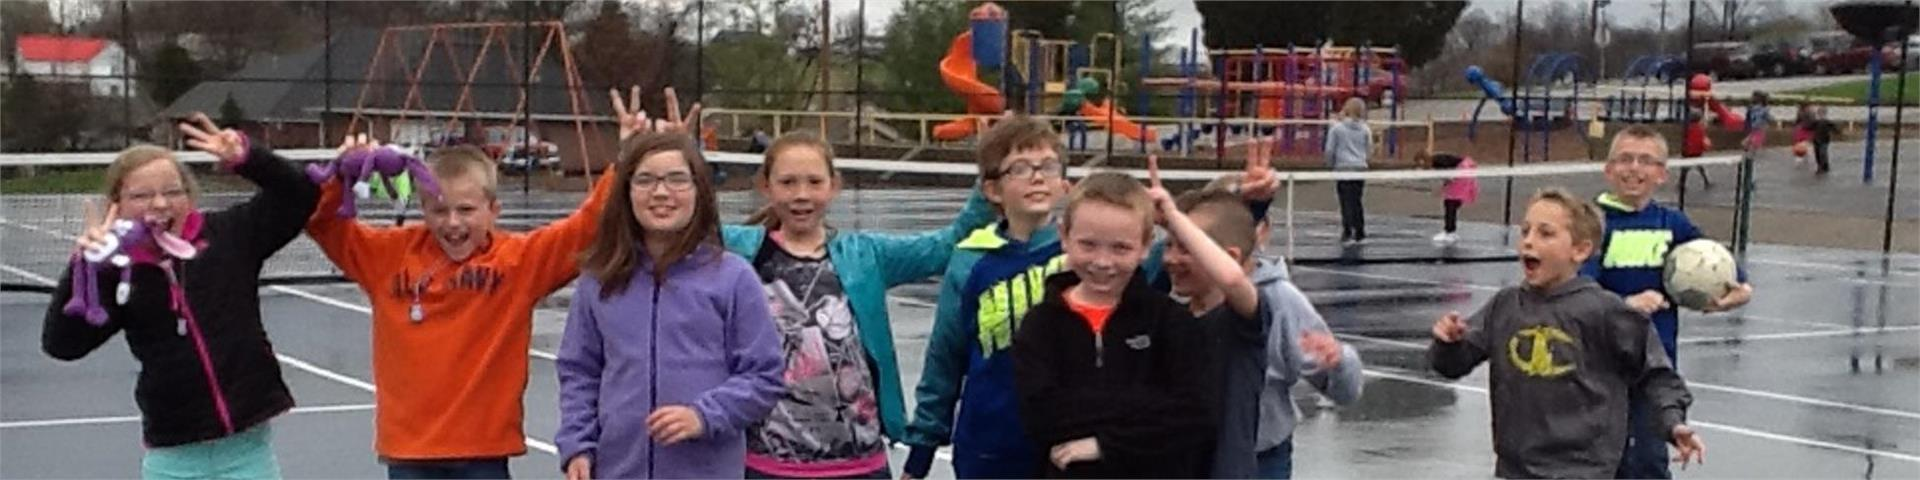 Students enjoy recess!